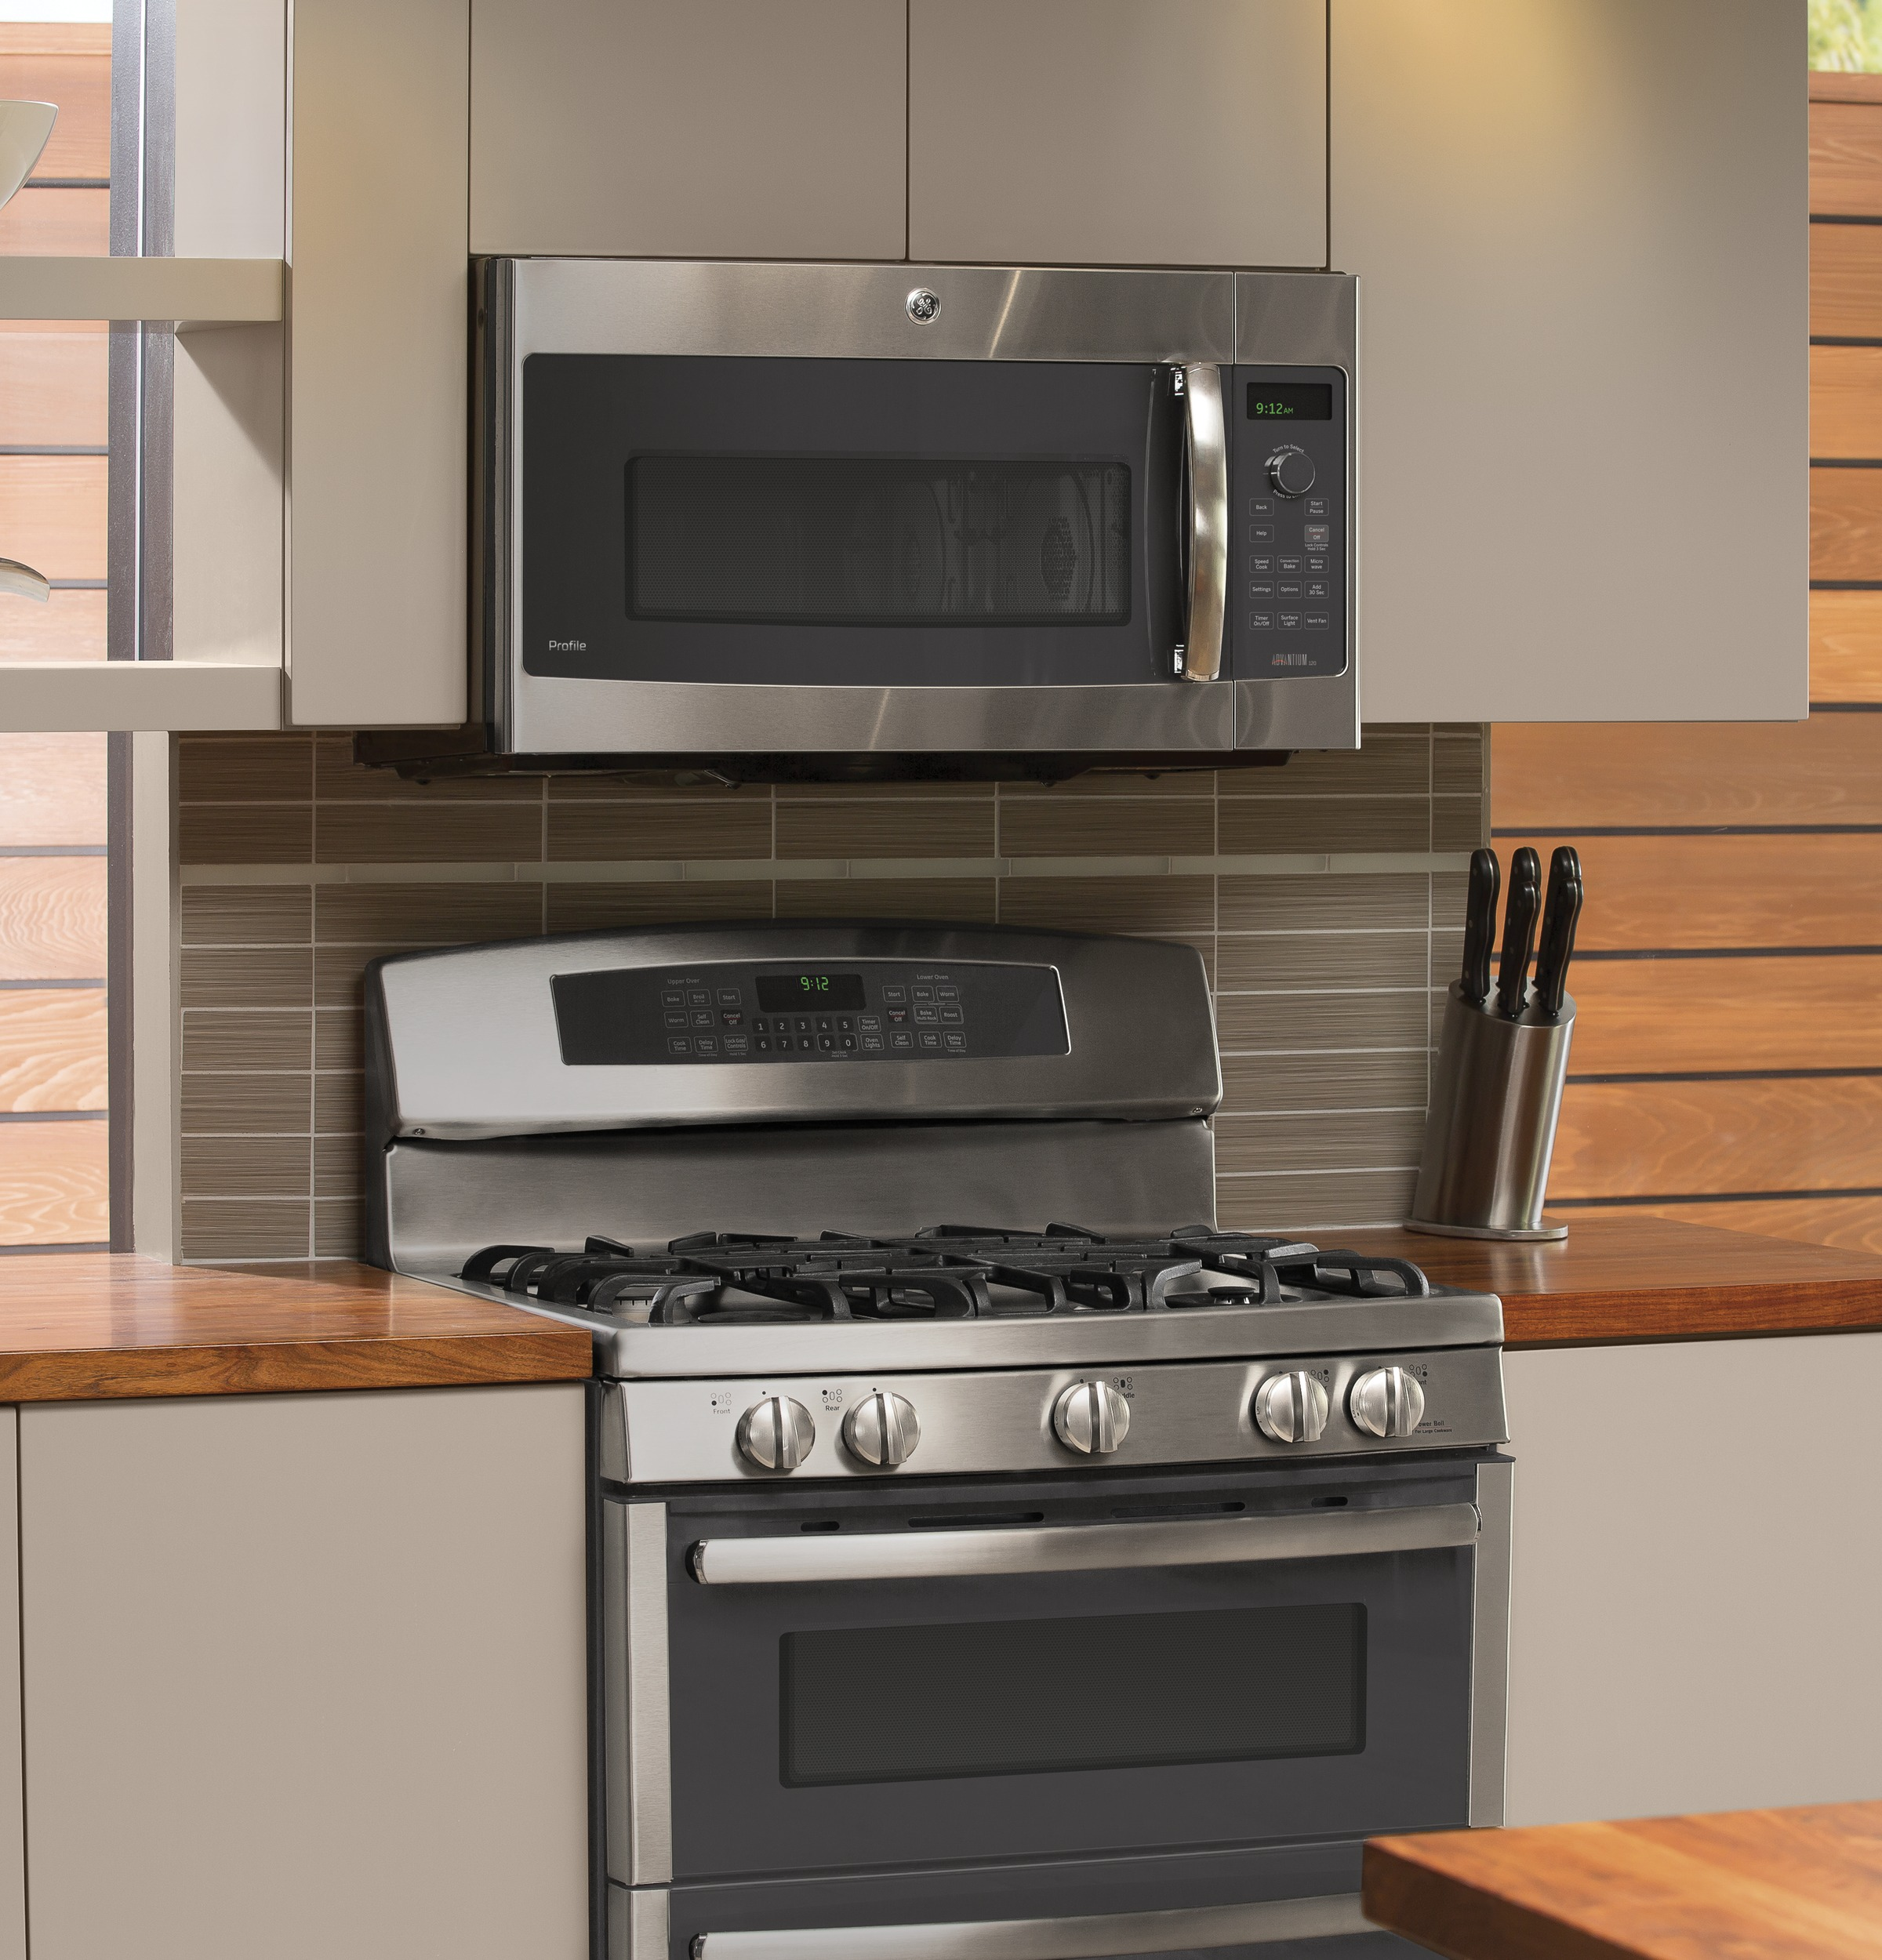 Model: PSA9120SFSS | GE Profile Series Over-the-Range Oven with Advantium® Technology